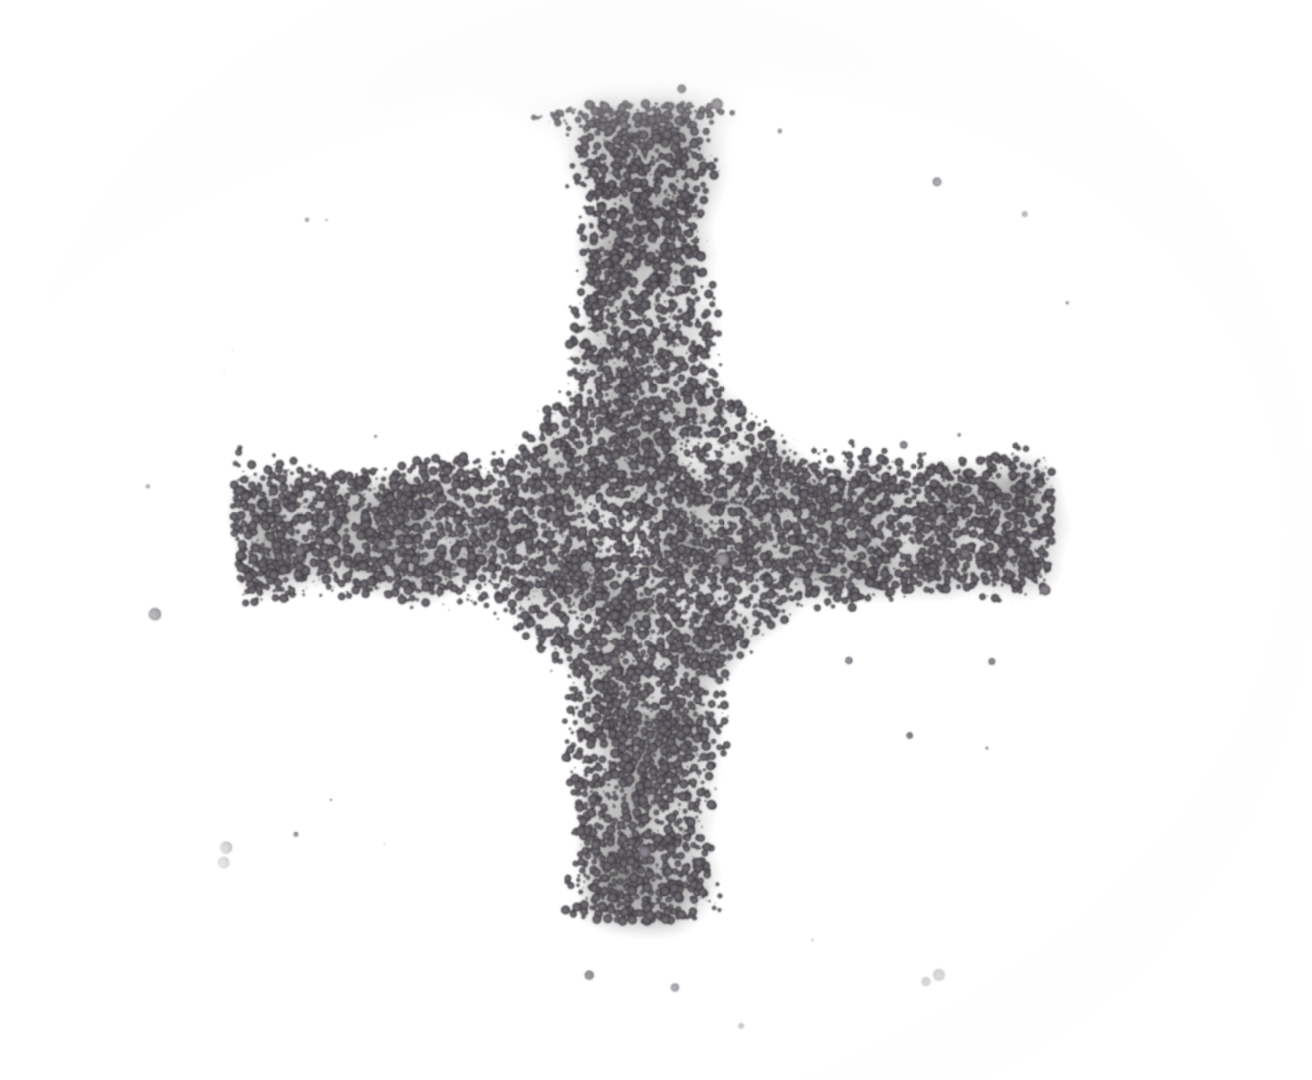 Church welcome graphics progressive. Wednesday clipart ash wednesday